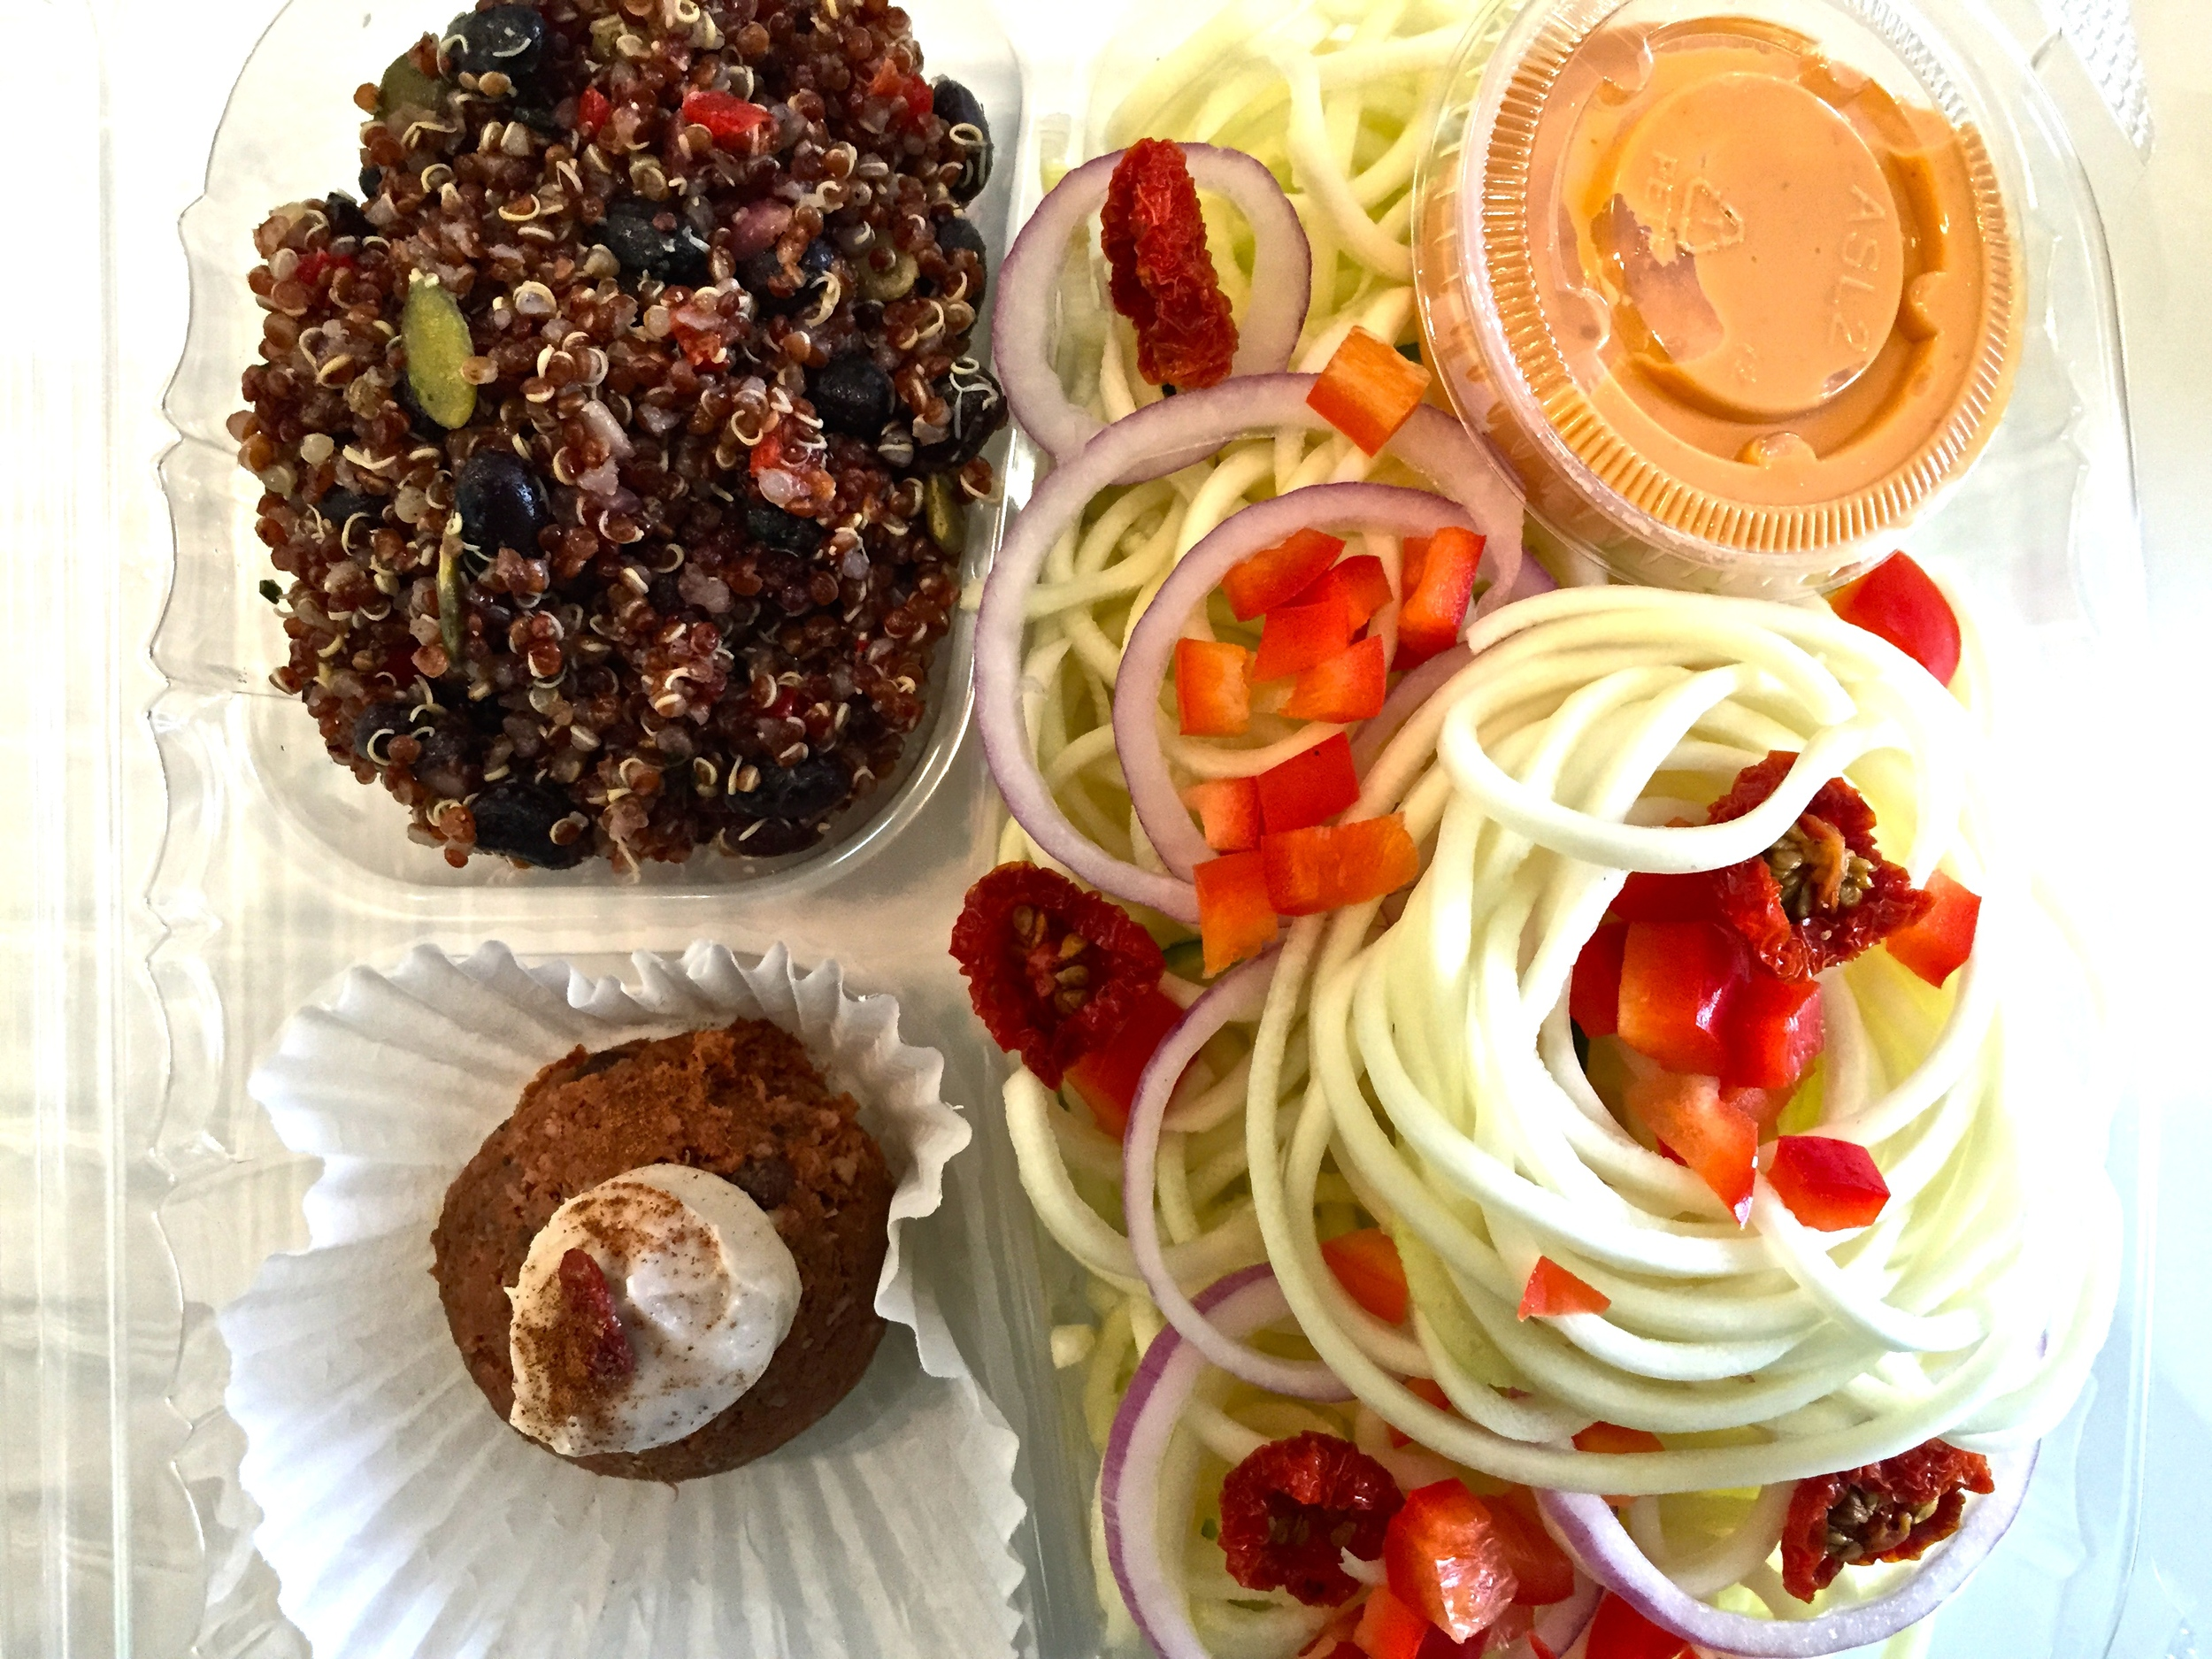 "Spaghetti: Zucchini Noodles, Raw Cashew Cheese Sauce, Signature Tomato ""raisins"" Quinoa: Quinoa, Black Beans, Cilantro, Lime Juice, Sea Salt, Red Onion, Bell Peppers, Cranberries, Pumpkin Seeds Carrot cake: I have no idea. But if I had to guess, I would say carrots."